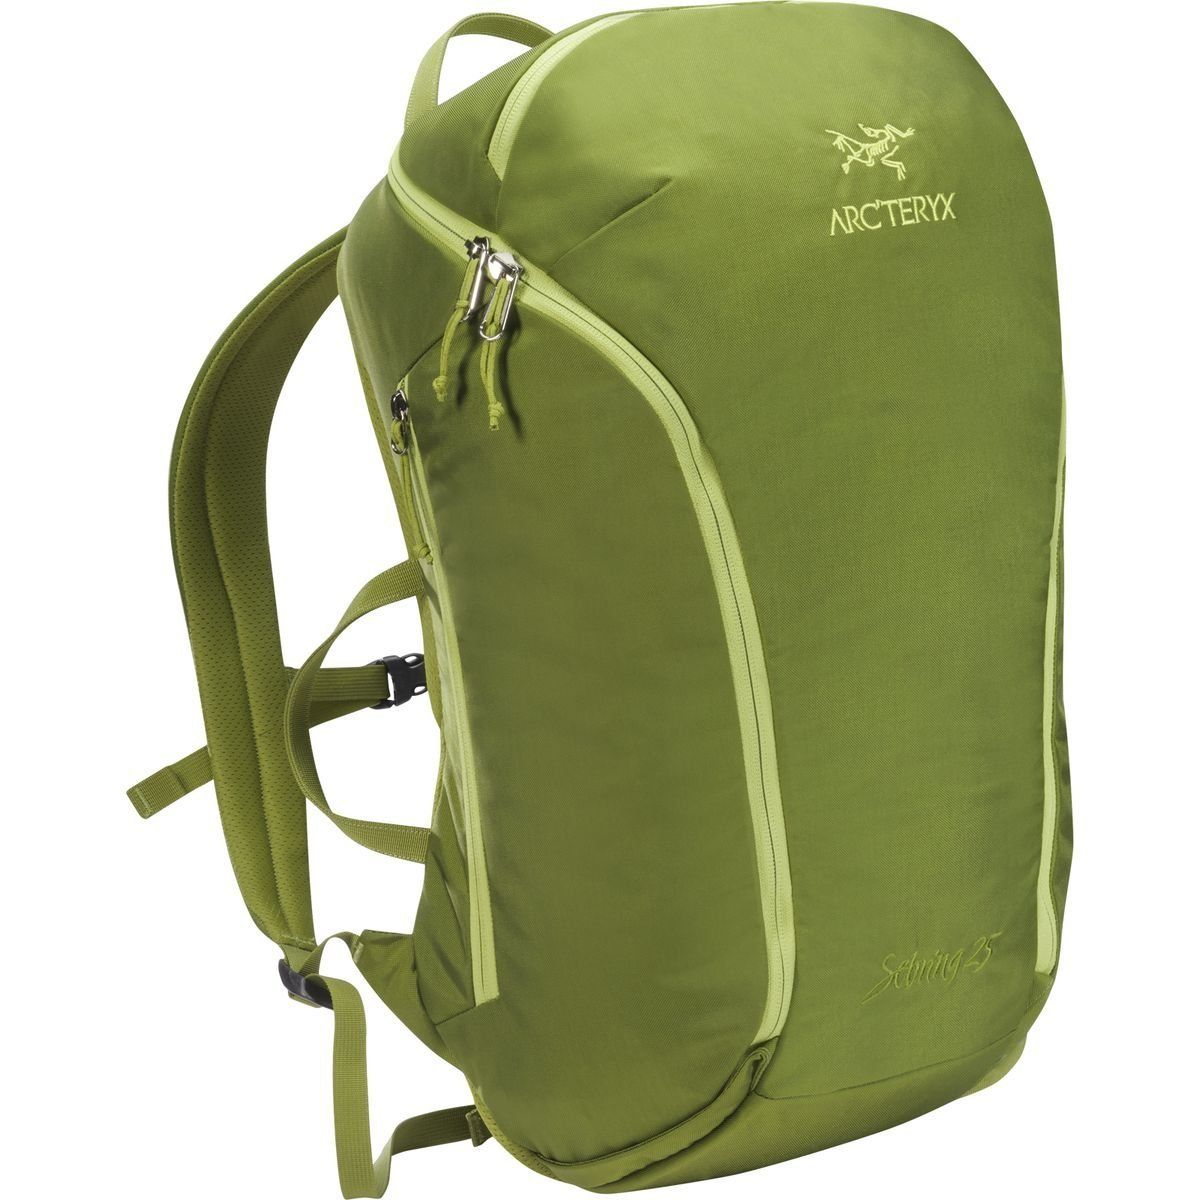 Arcteryx Sebring 25 Pack Additional Details Found At The Image Link Day Backpacks Backpacking Packing Backpack Inspiration Backpacks